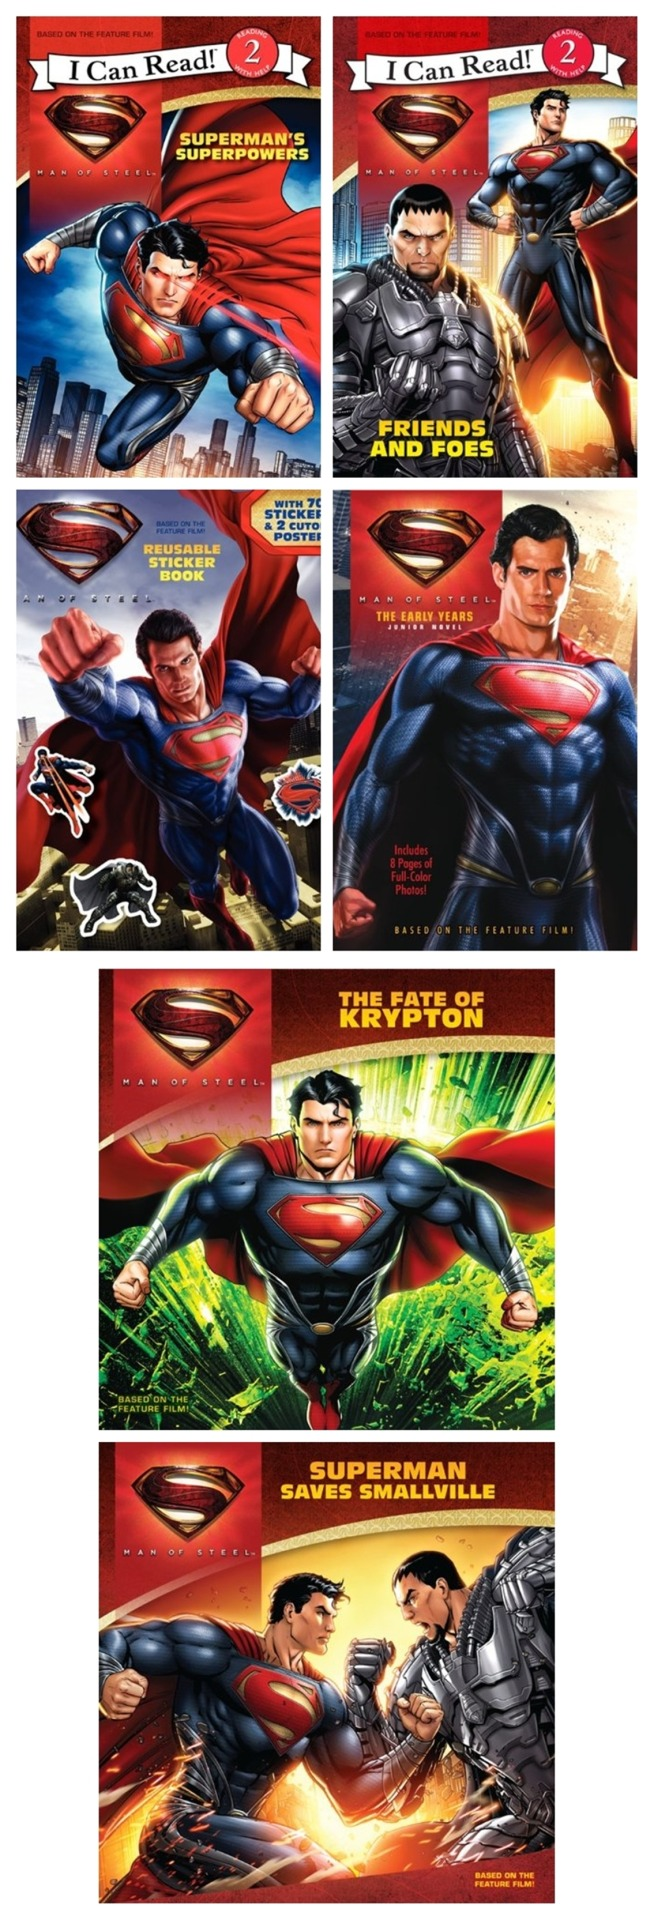 Upcoming Superman Man of Steel Titles For Young Readers.